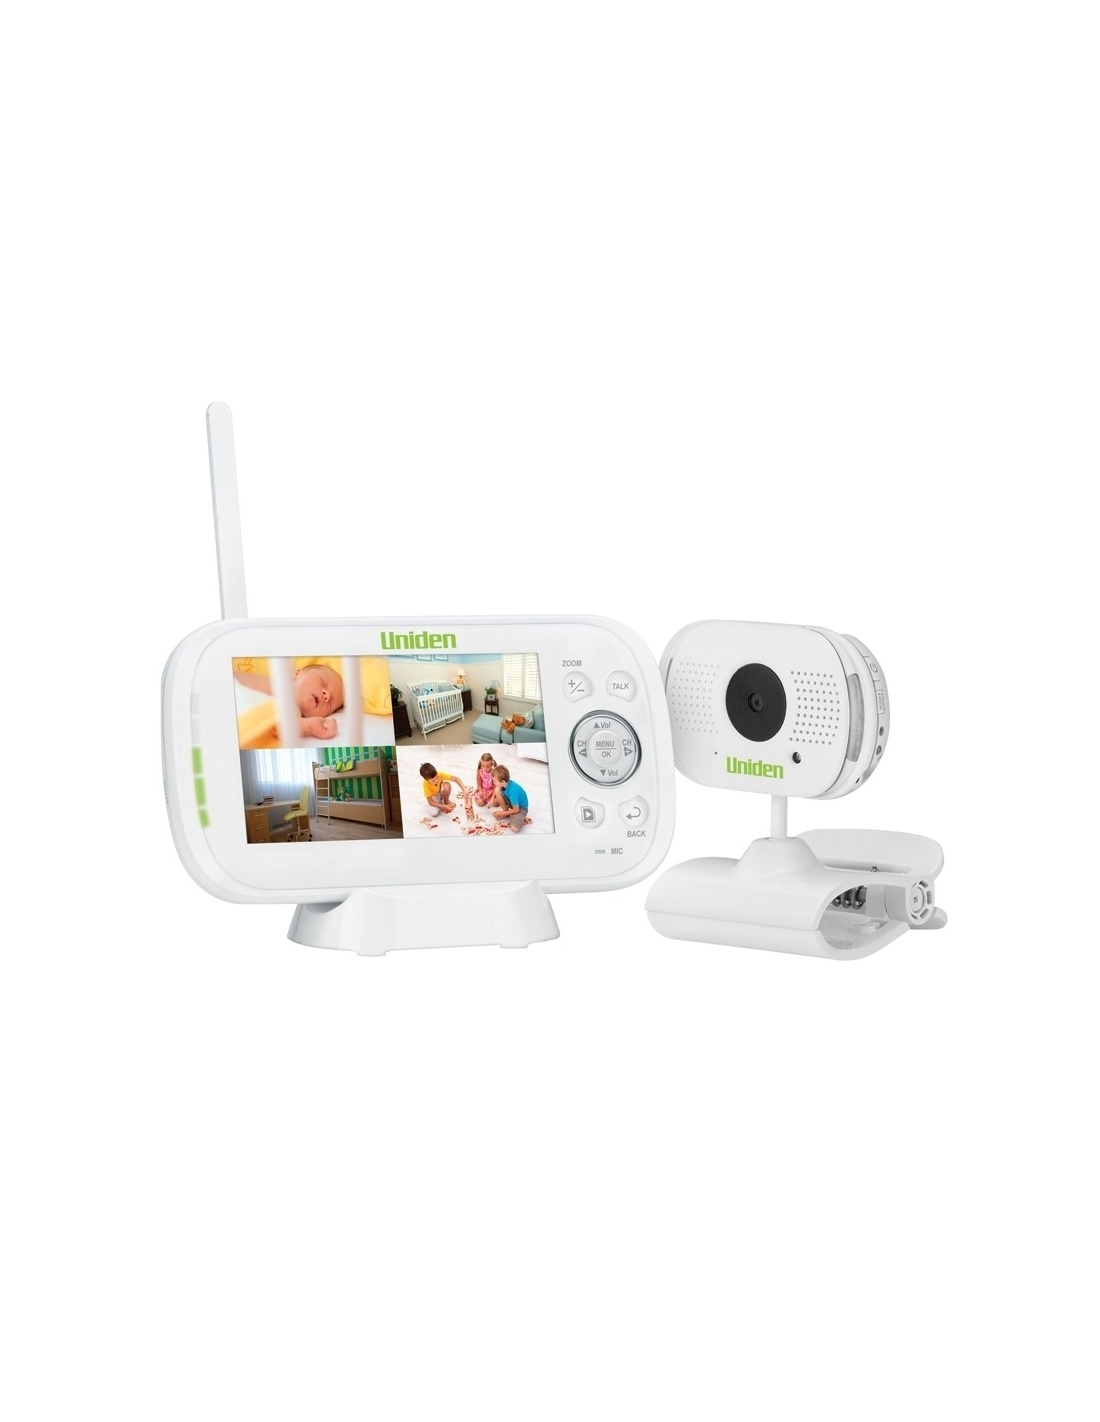 Uniden BW3101 4.3 Inch Digital Wireless Video Baby Monitor